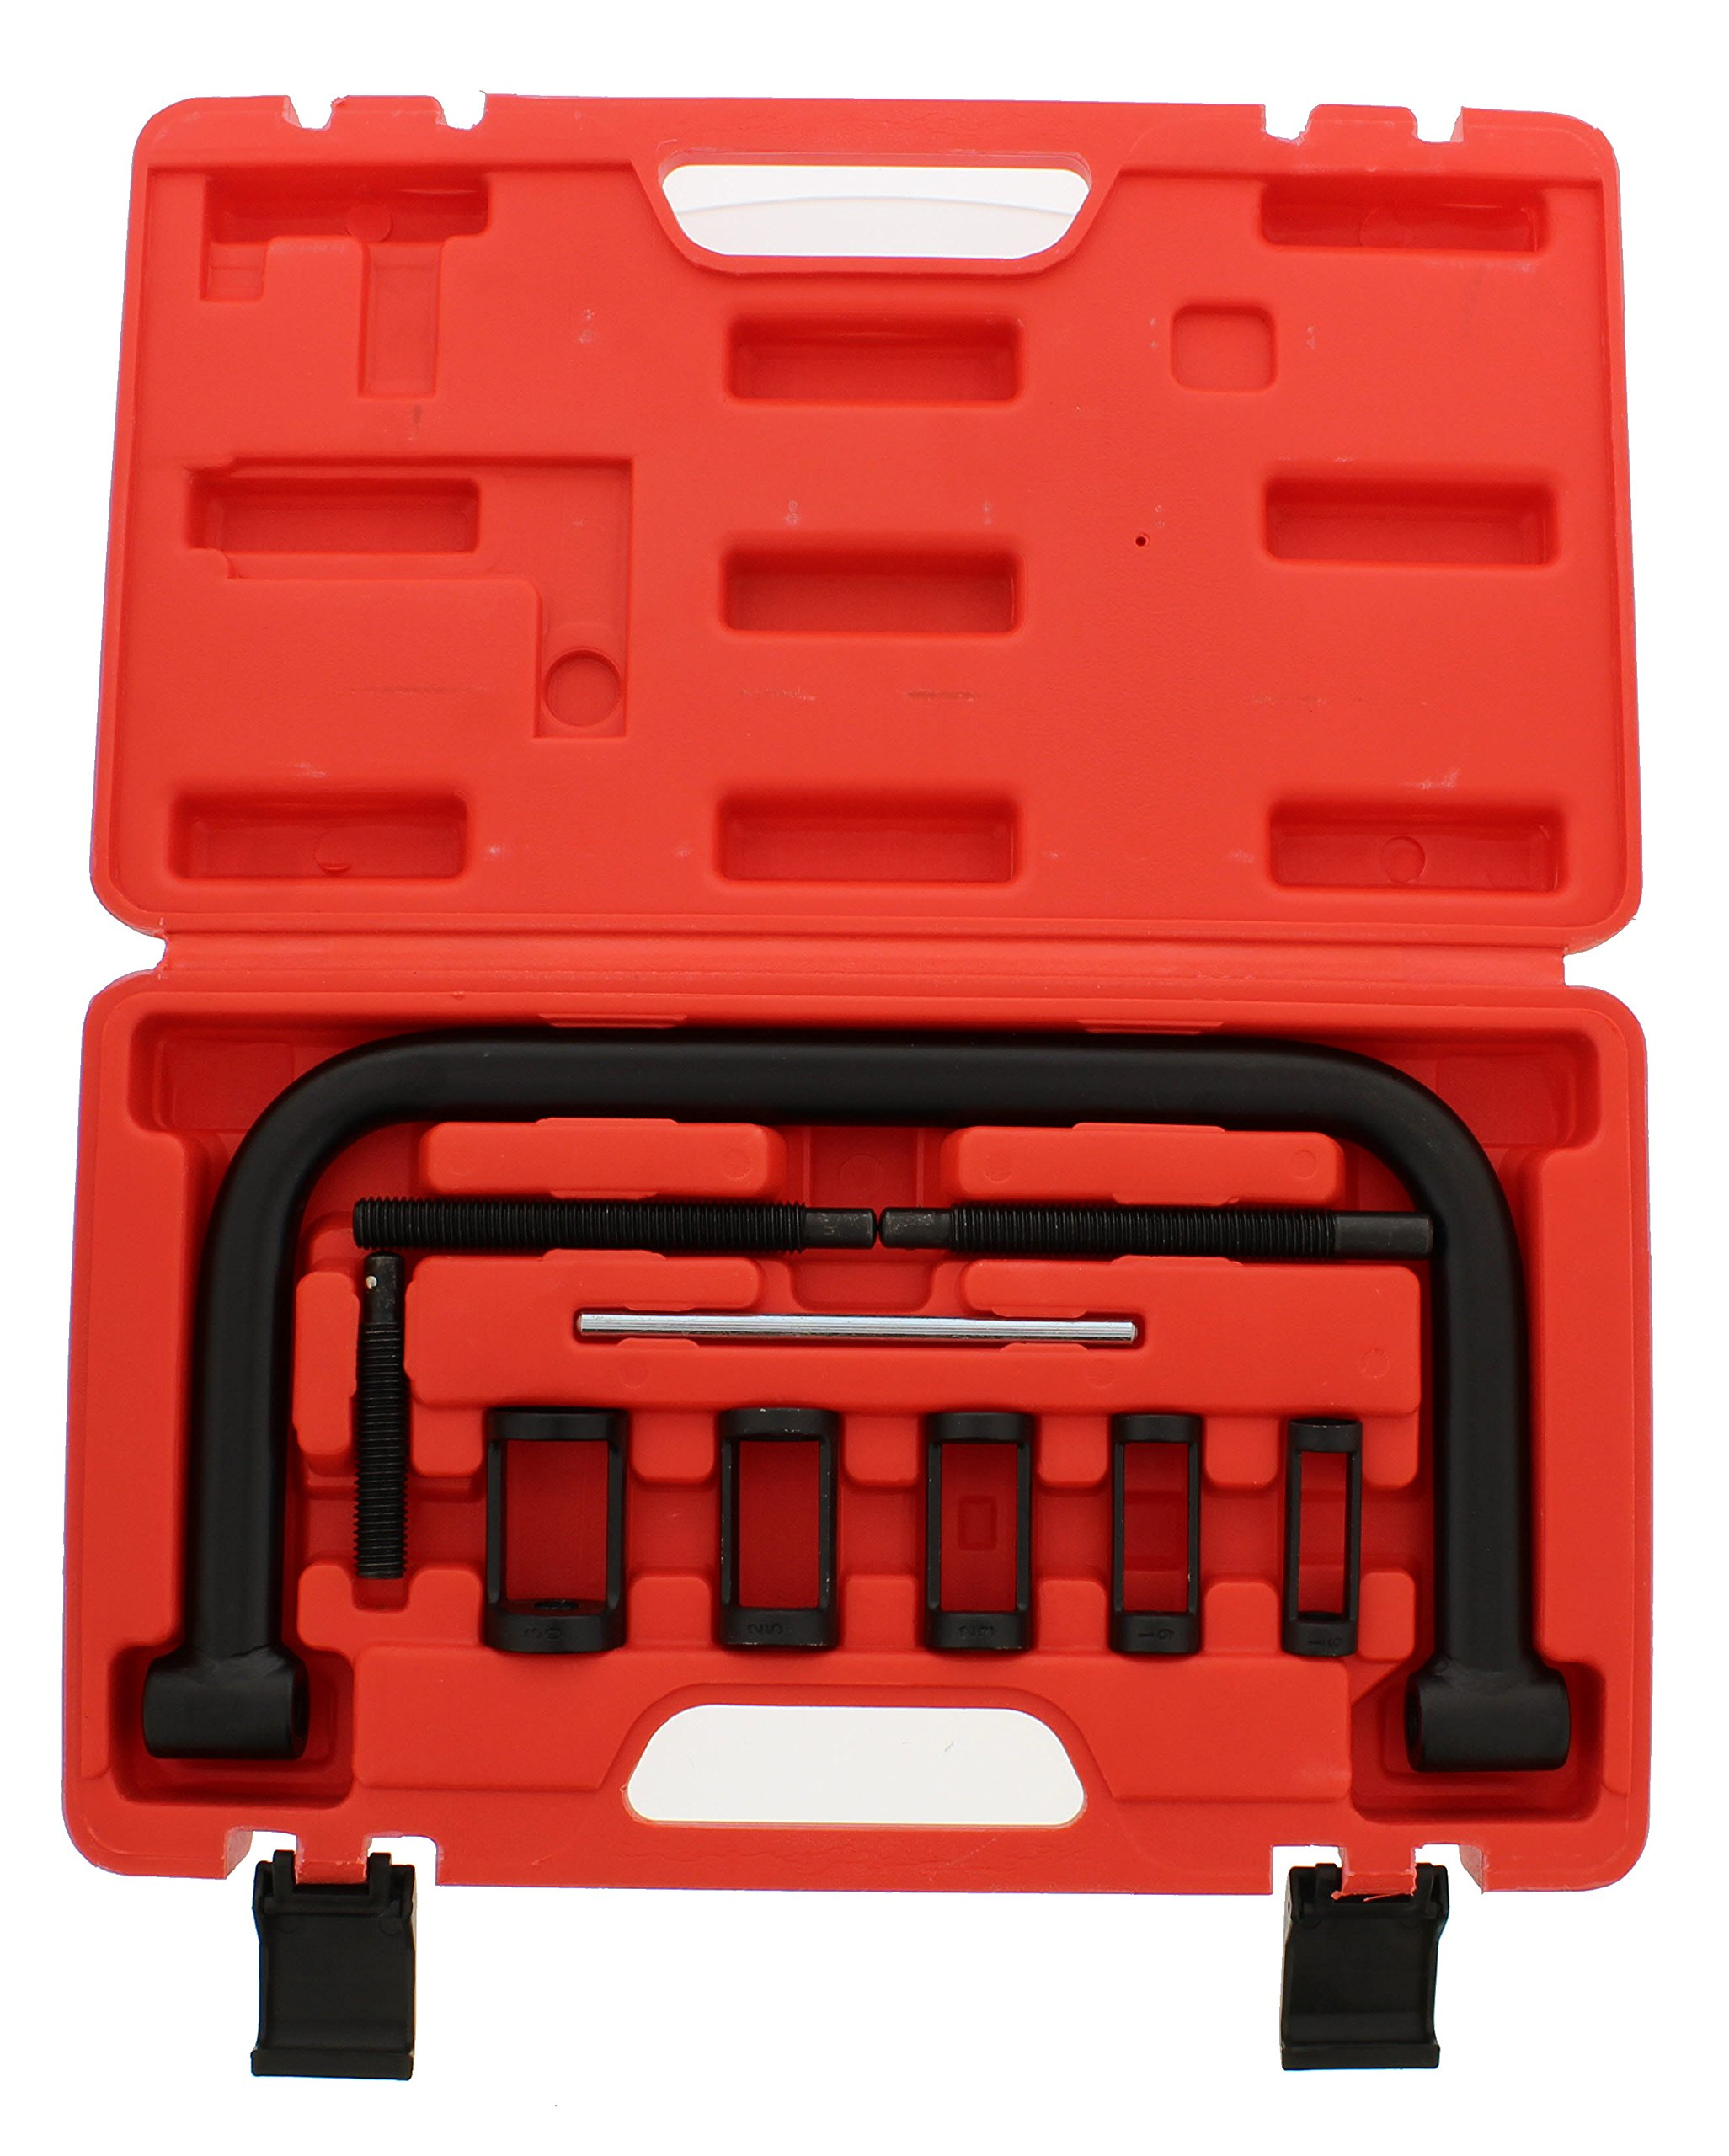 ABN Auto Valve Spring Compressor C Clamp Tool Set Service Kit for Motorcycle, ATV, Car, Small Engine Vehicle Equipment